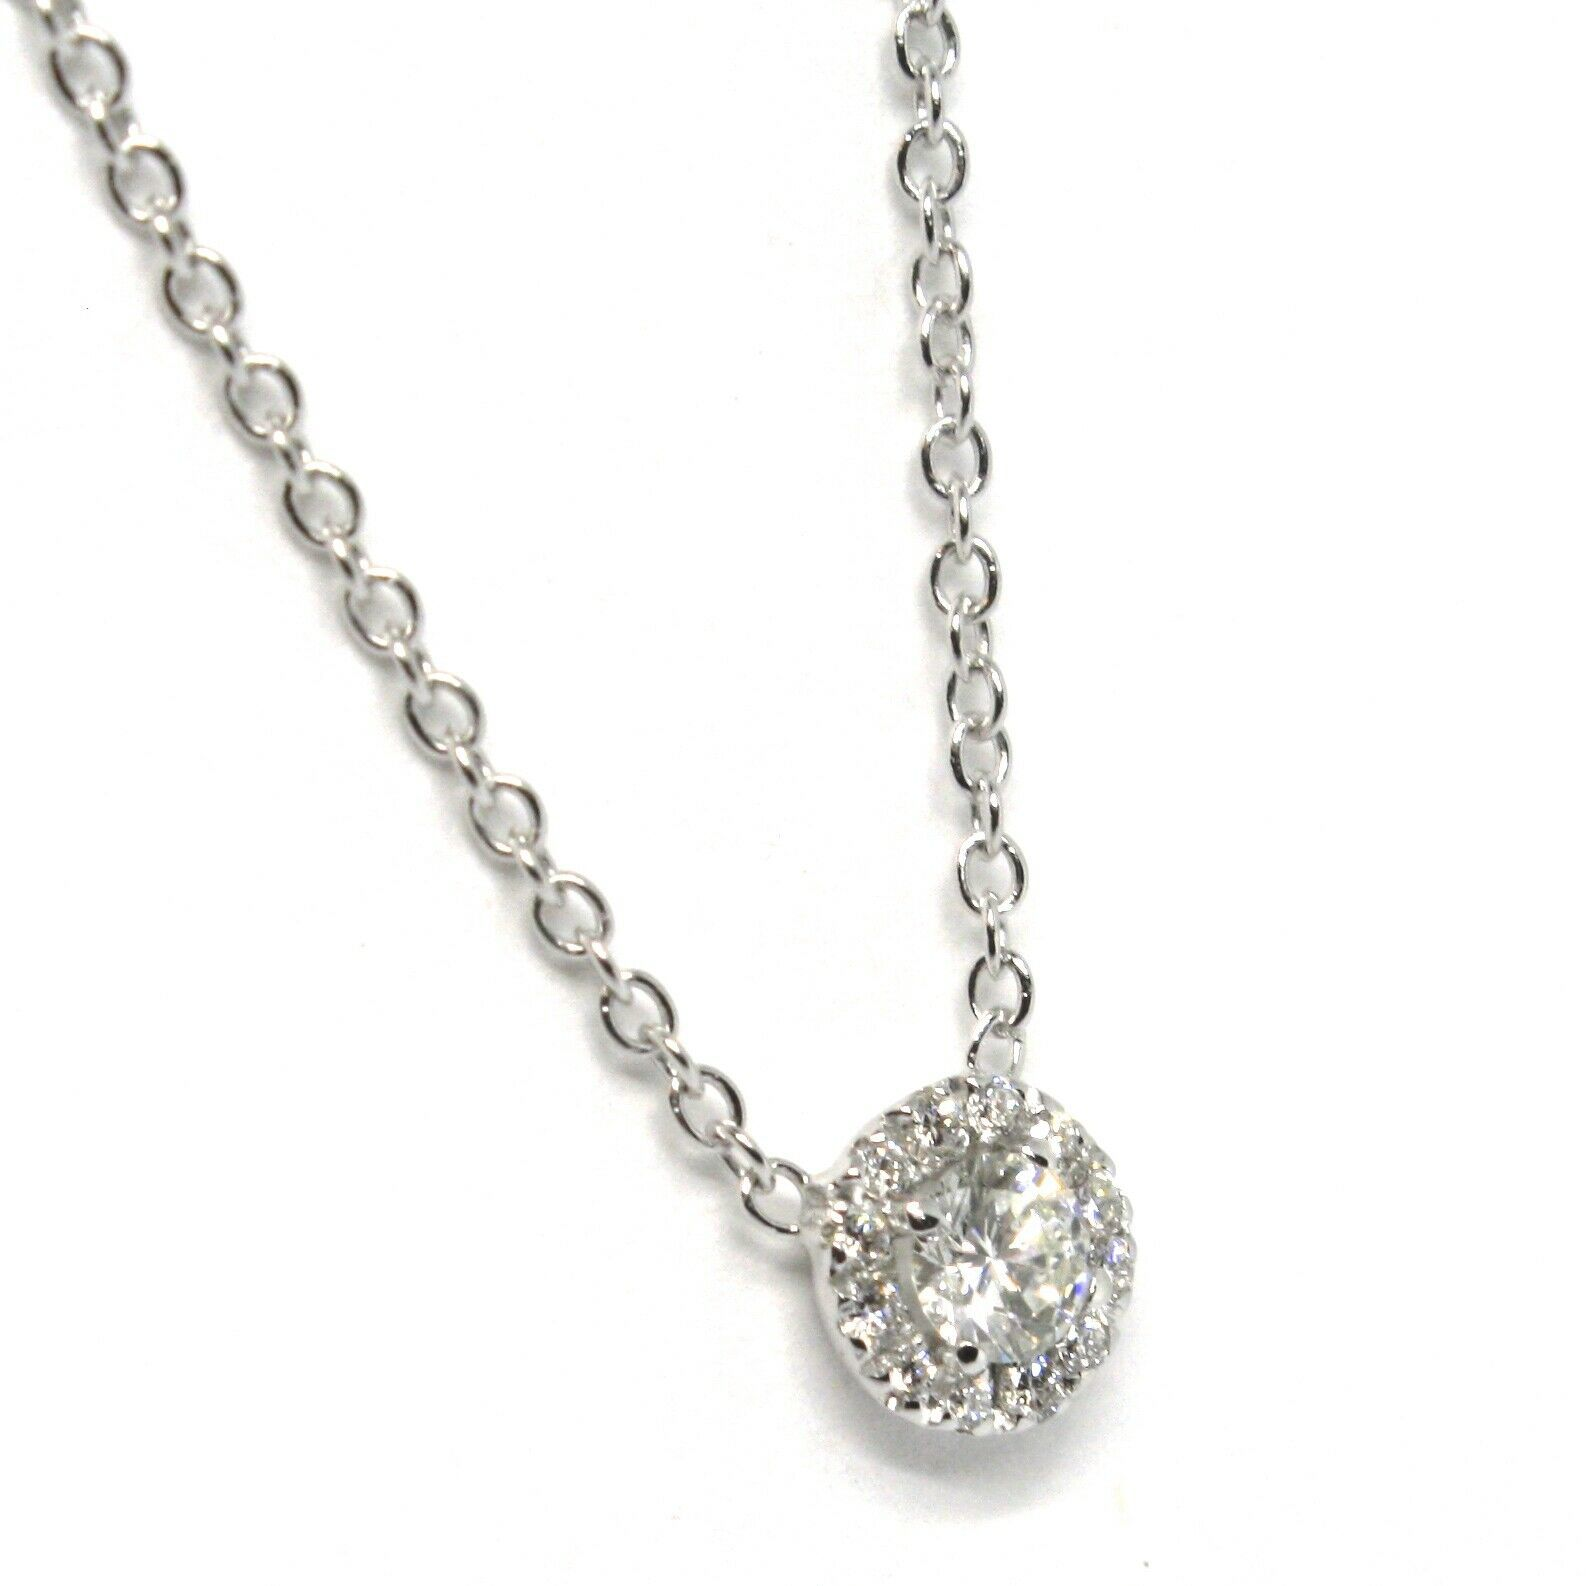 Necklace White Gold 750 18k,Central & Frame of Diamonds,0.24 CT,Flower,Rolo '